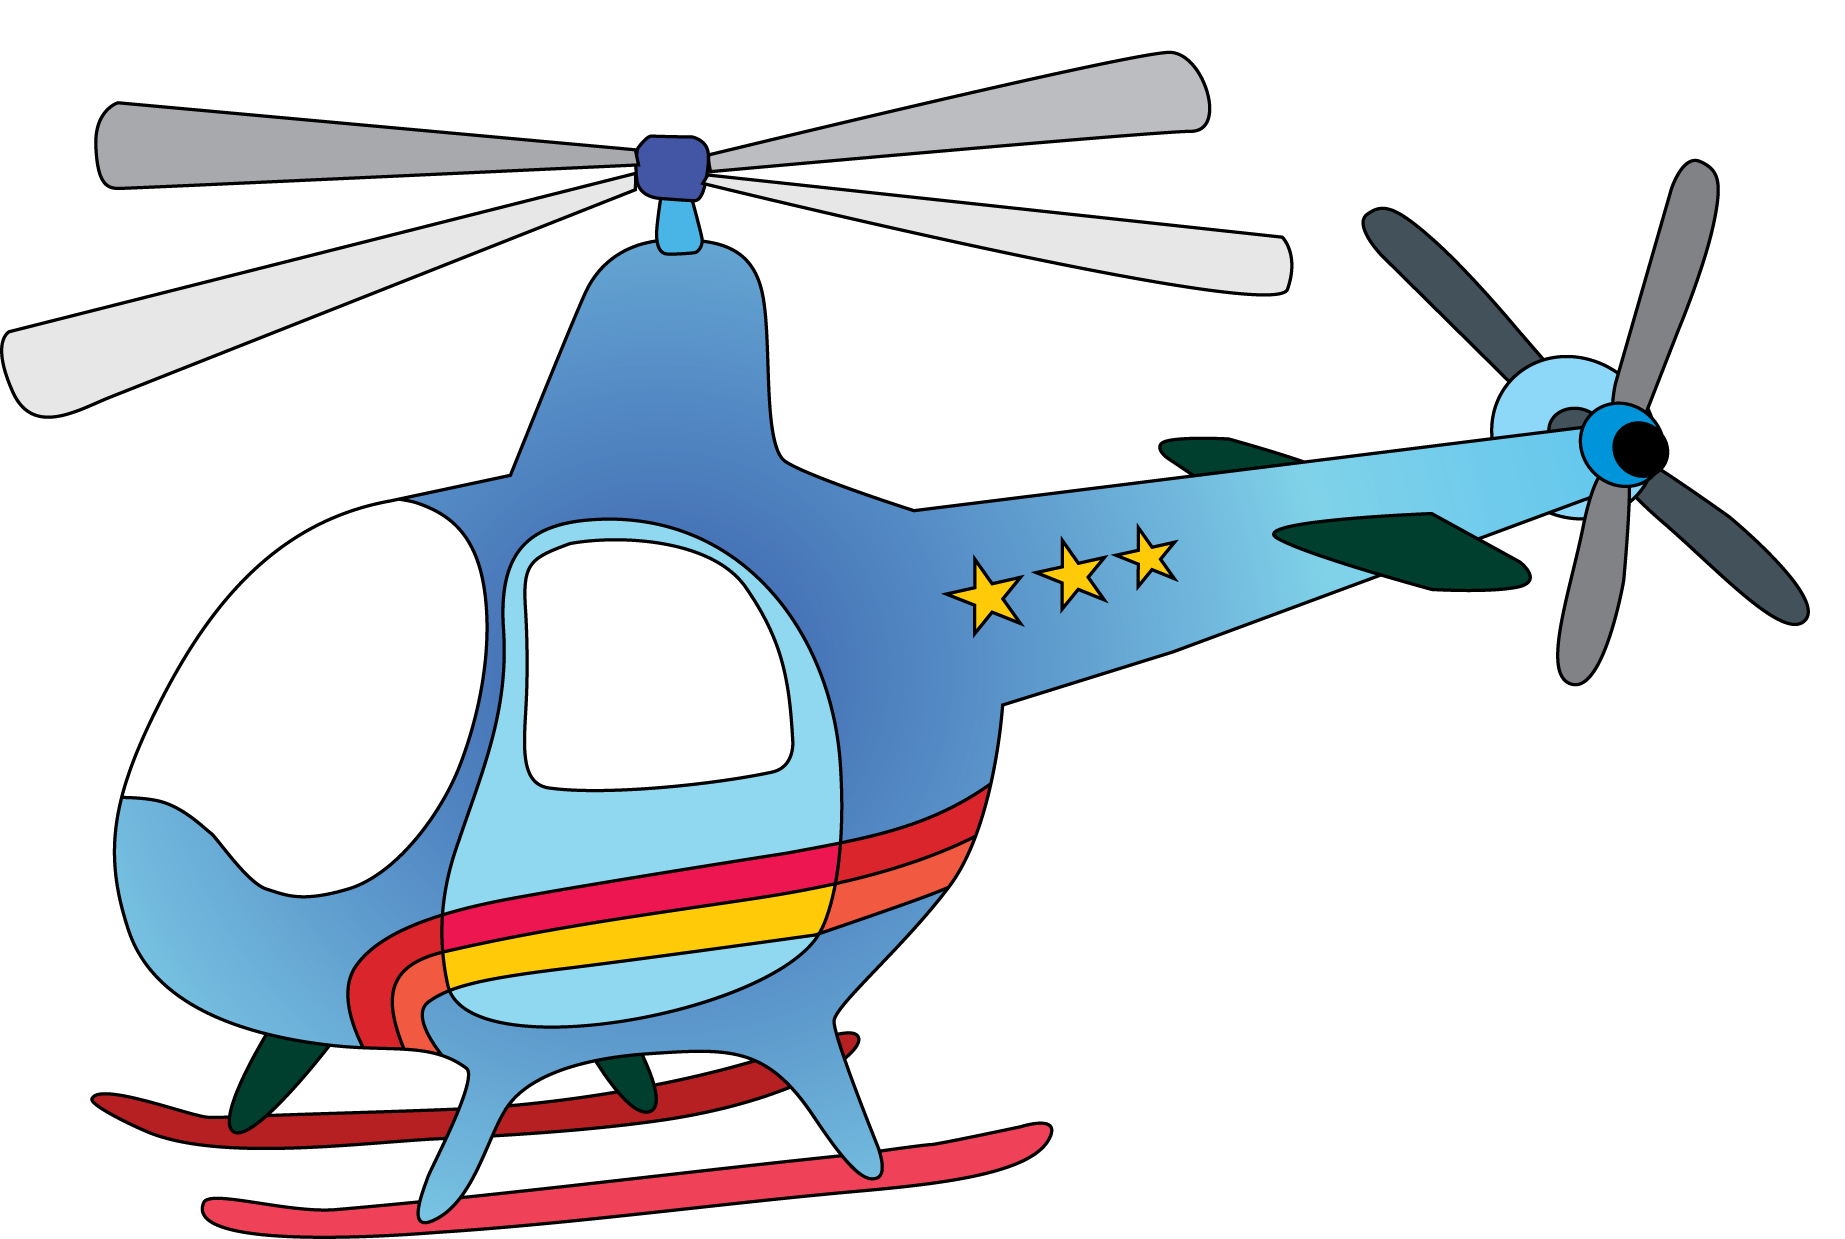 Helicopter clipart helicopter crash. Graphic design pinterest toy